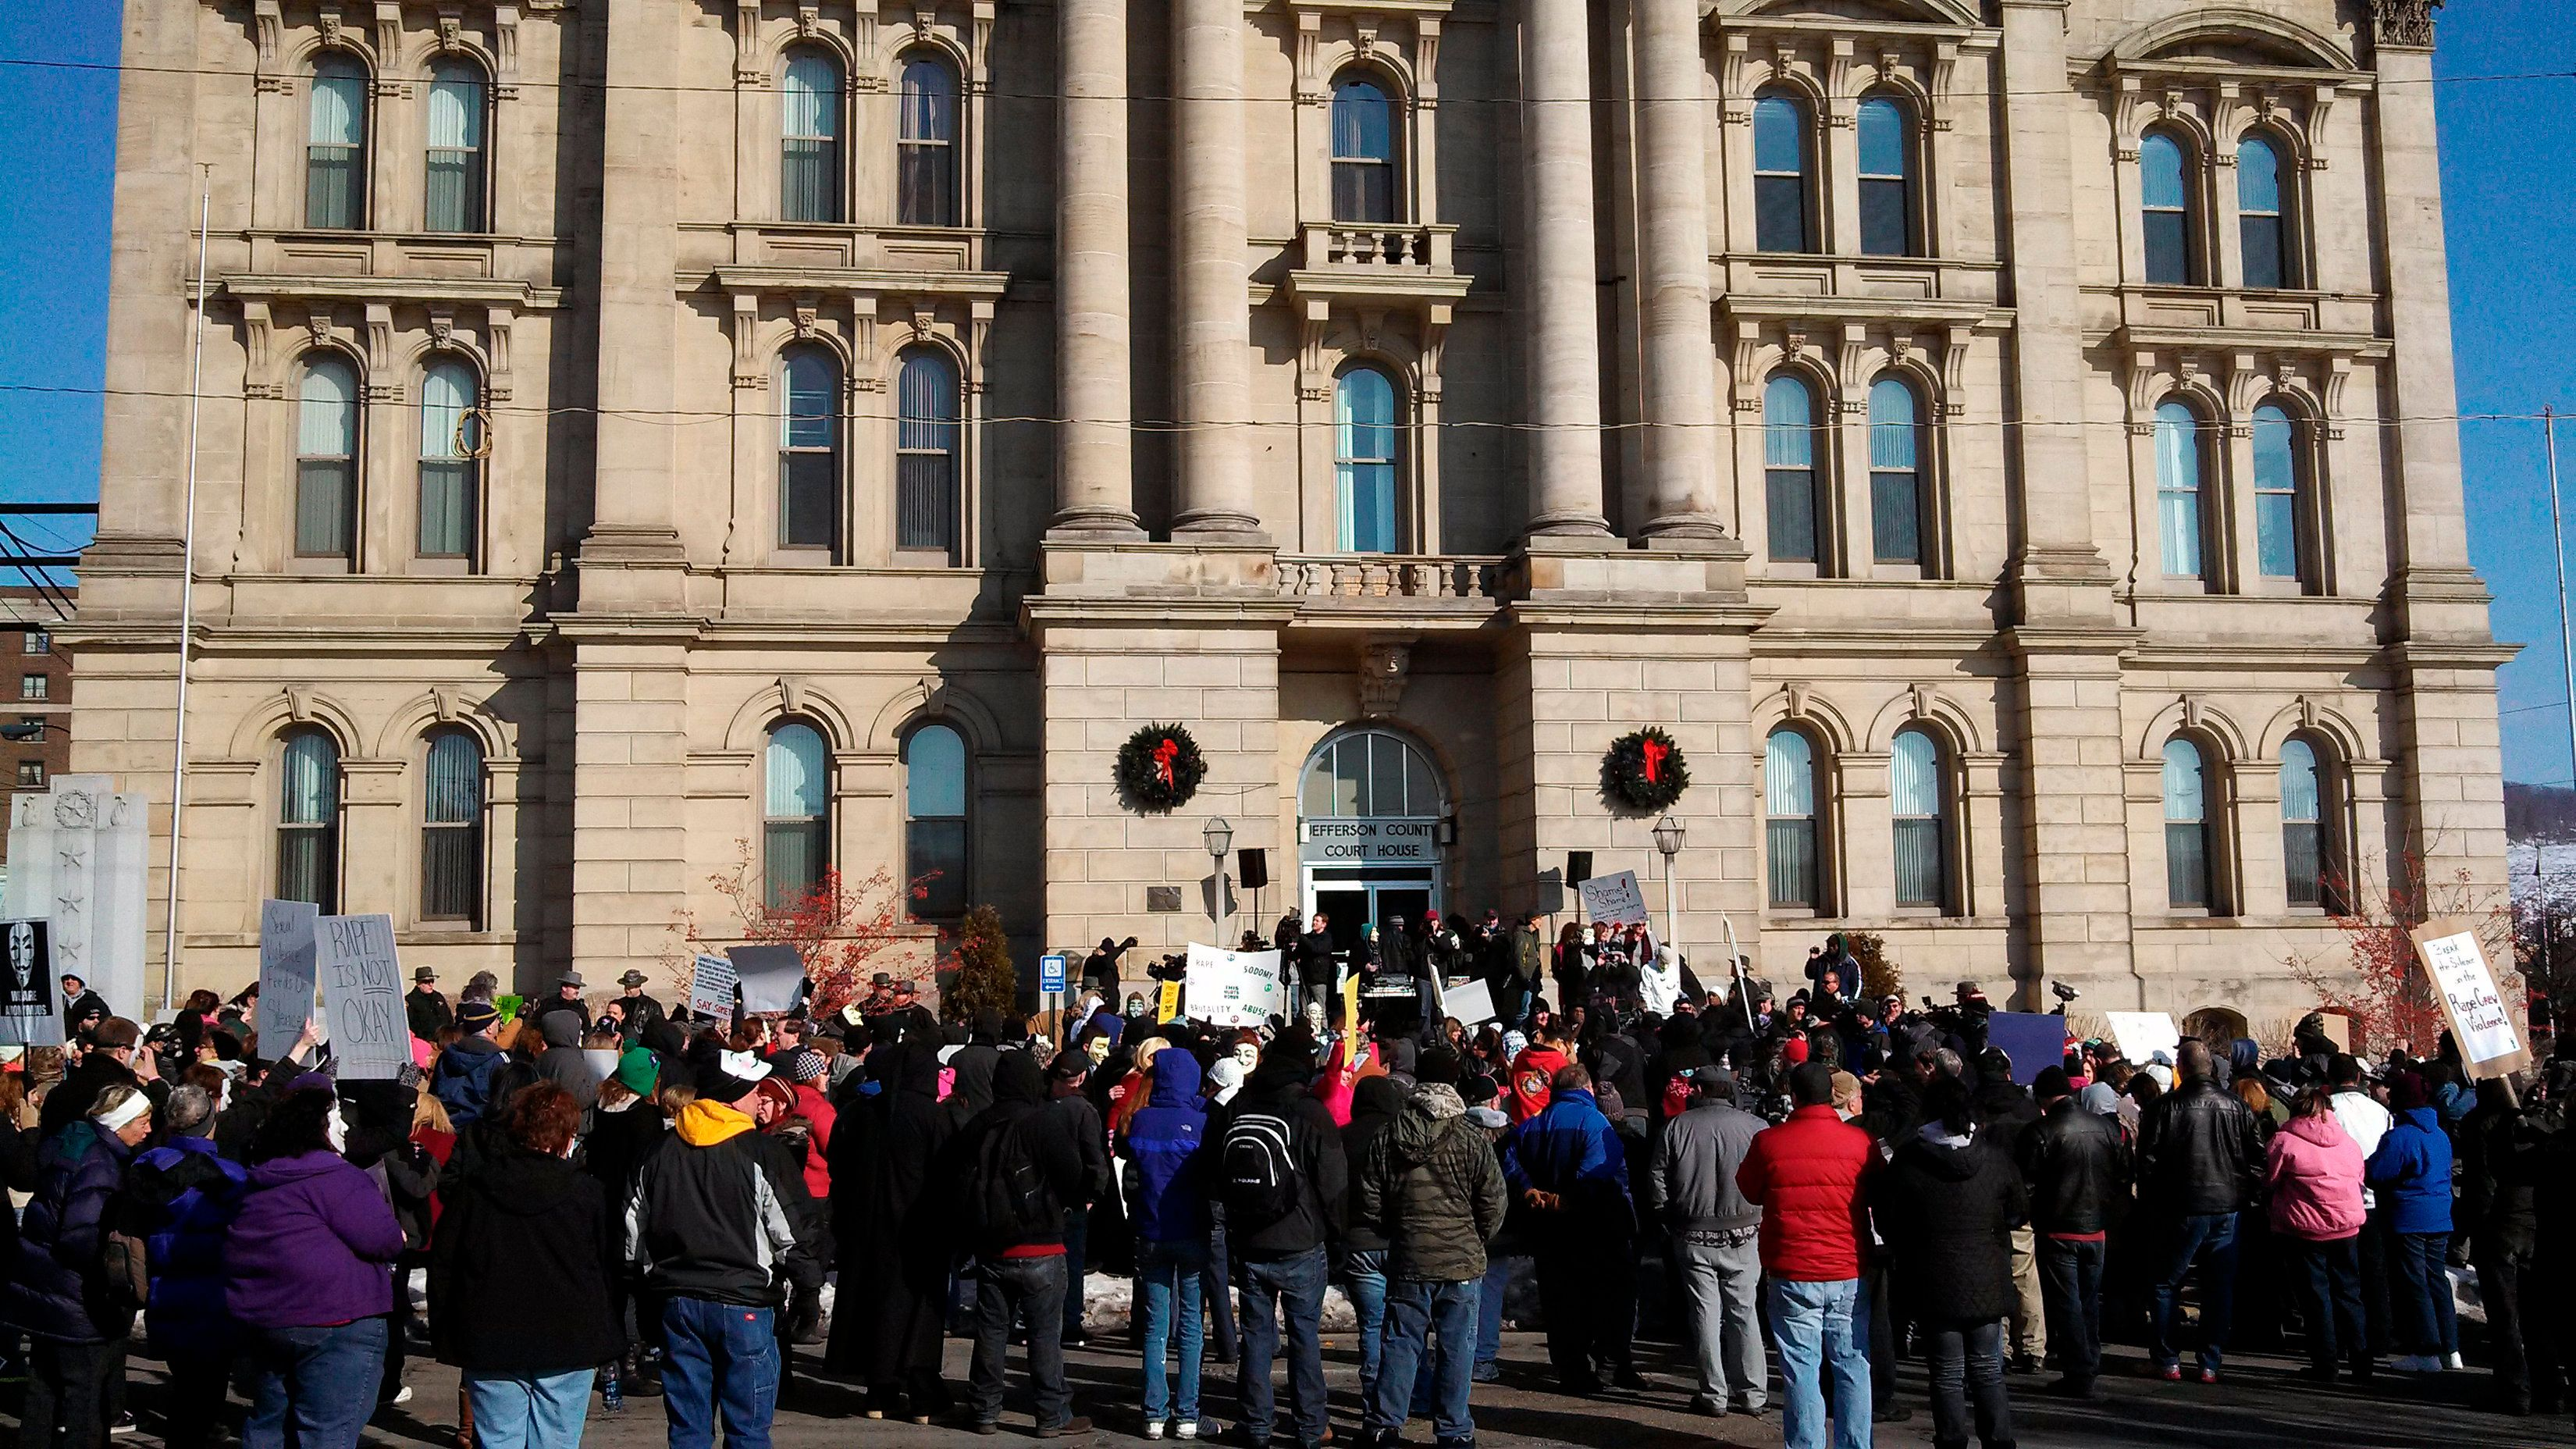 Protesters upset by the local sheriff's handling of a rape case involving two high school football players gathered in front